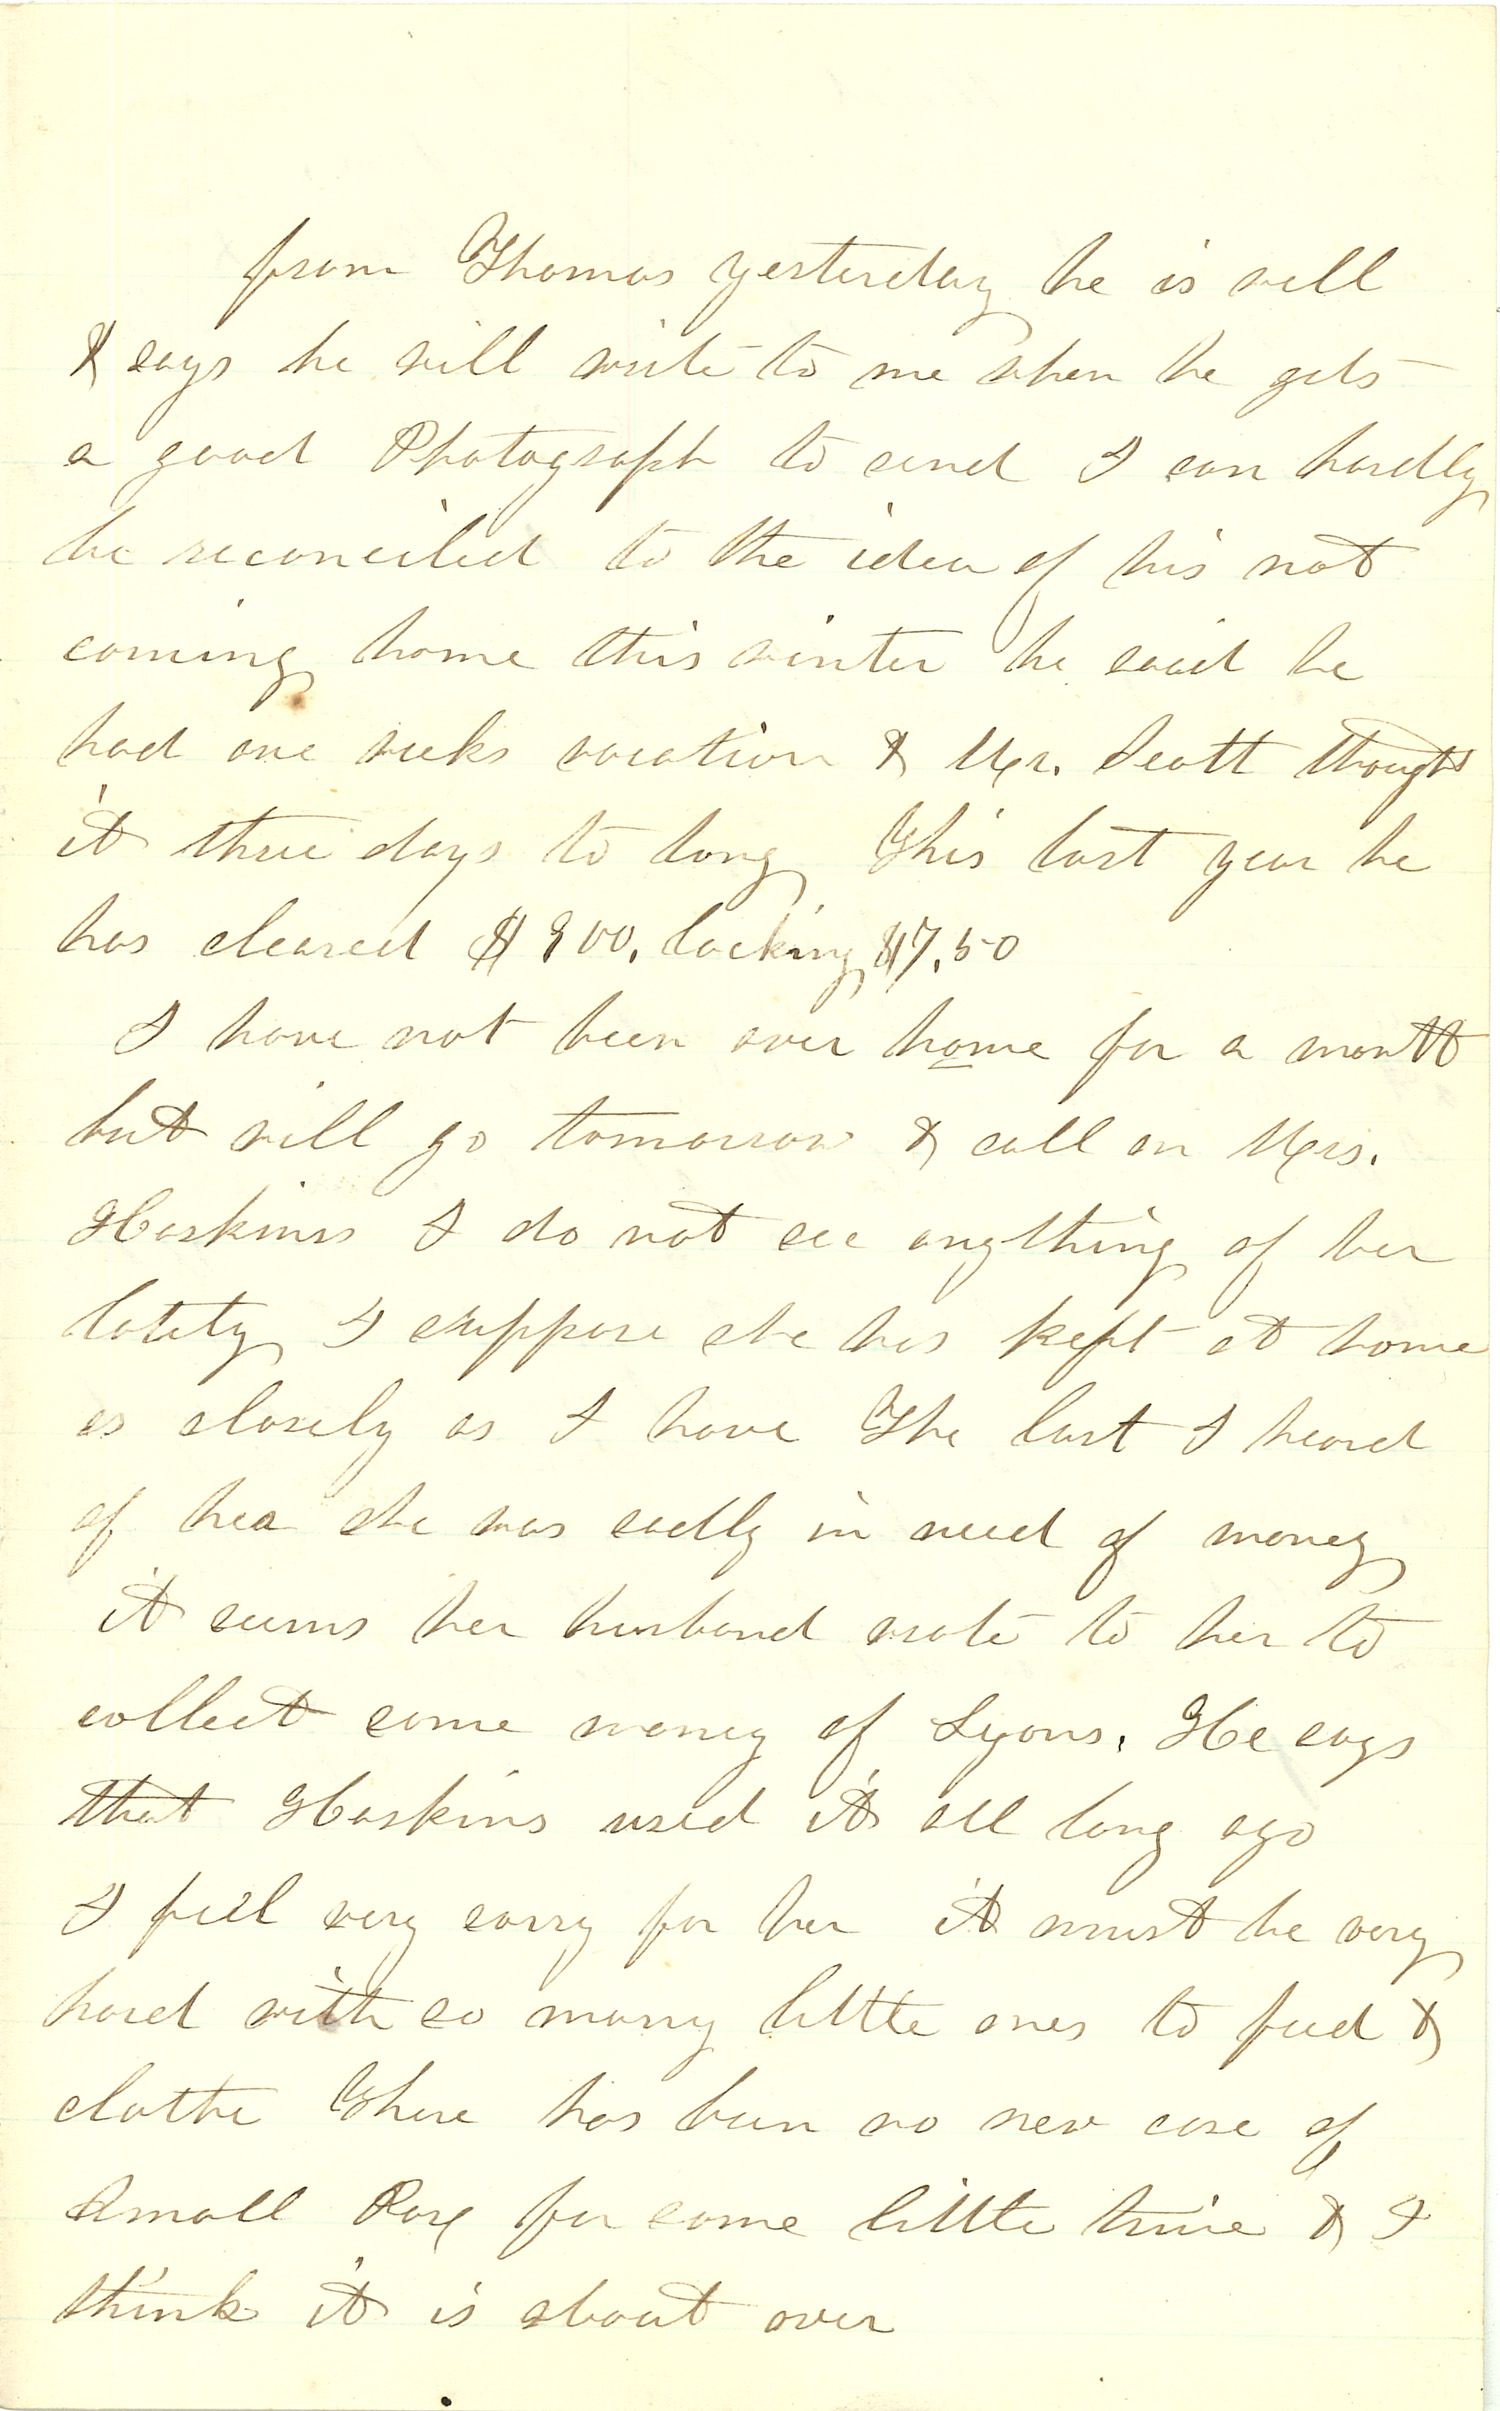 Joseph Culver Letter, January 9, 1863, Page 3